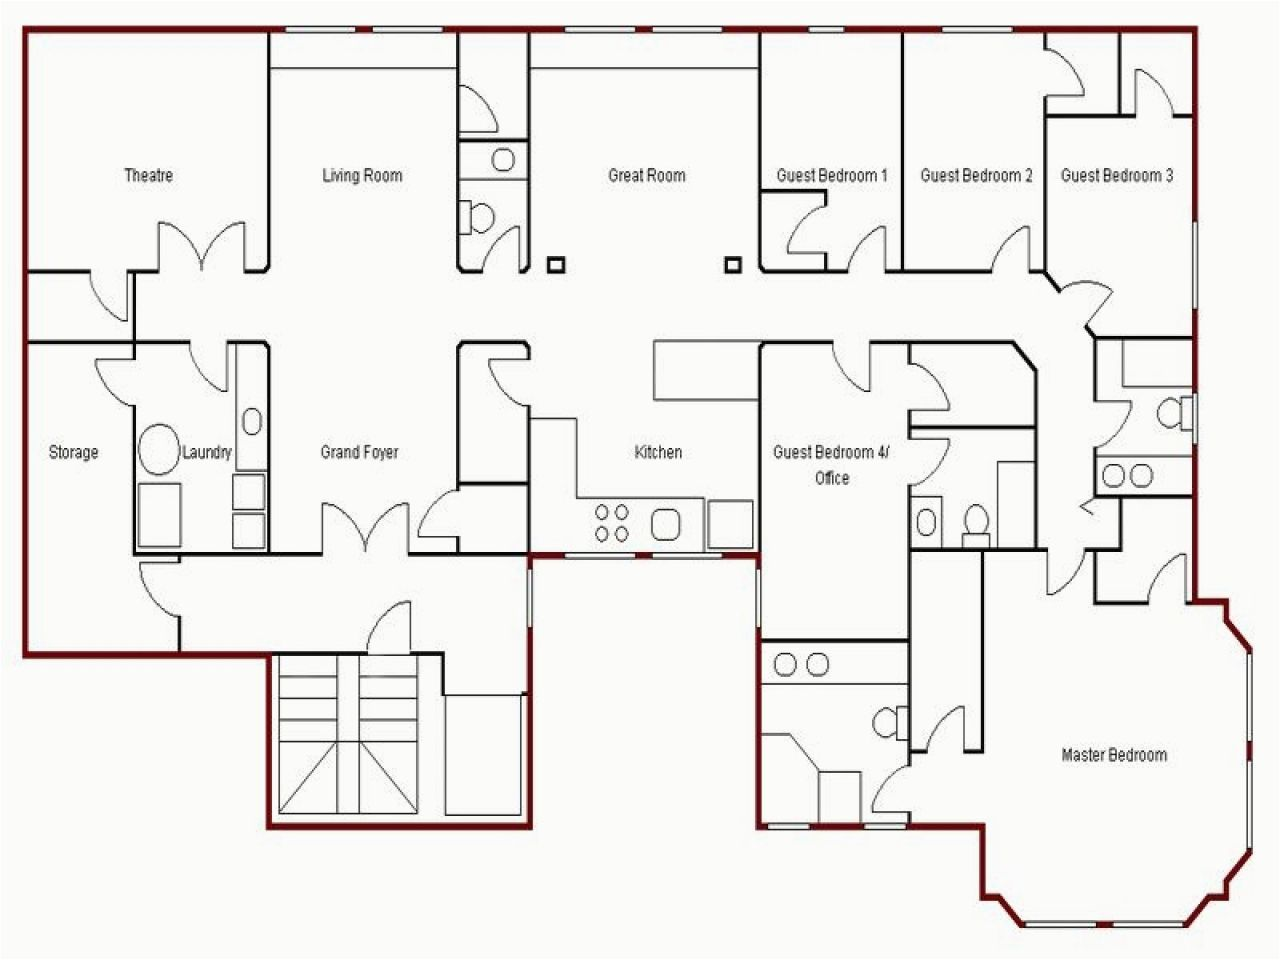 Nice How To Draw Simple House Plans Simple Floor Plans Floor Plan Drawing Floor Planner